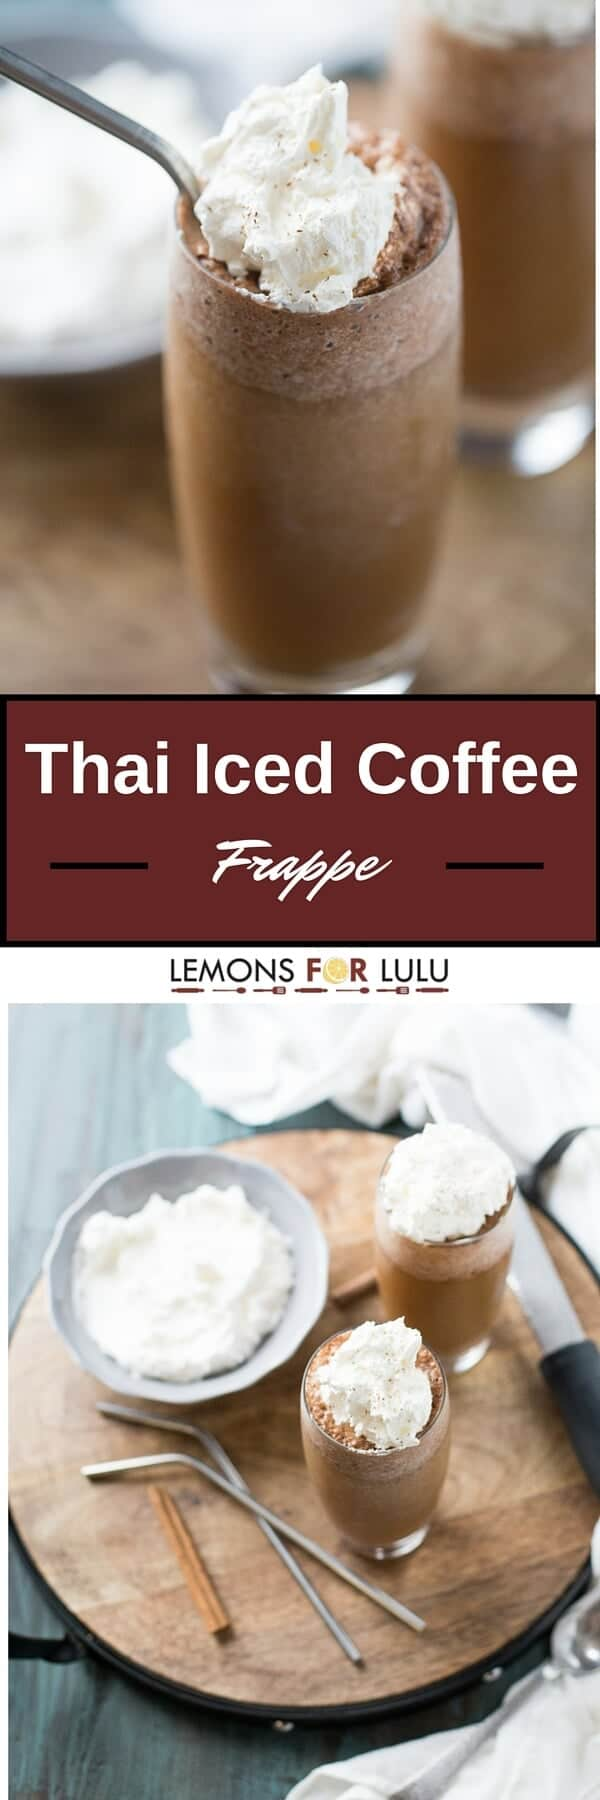 Thai Iced Coffee will you blow you away! This cook, frothy drink features seasoned coffee sweetened with almond milk and whipped cream! It is the perfect pick me up!